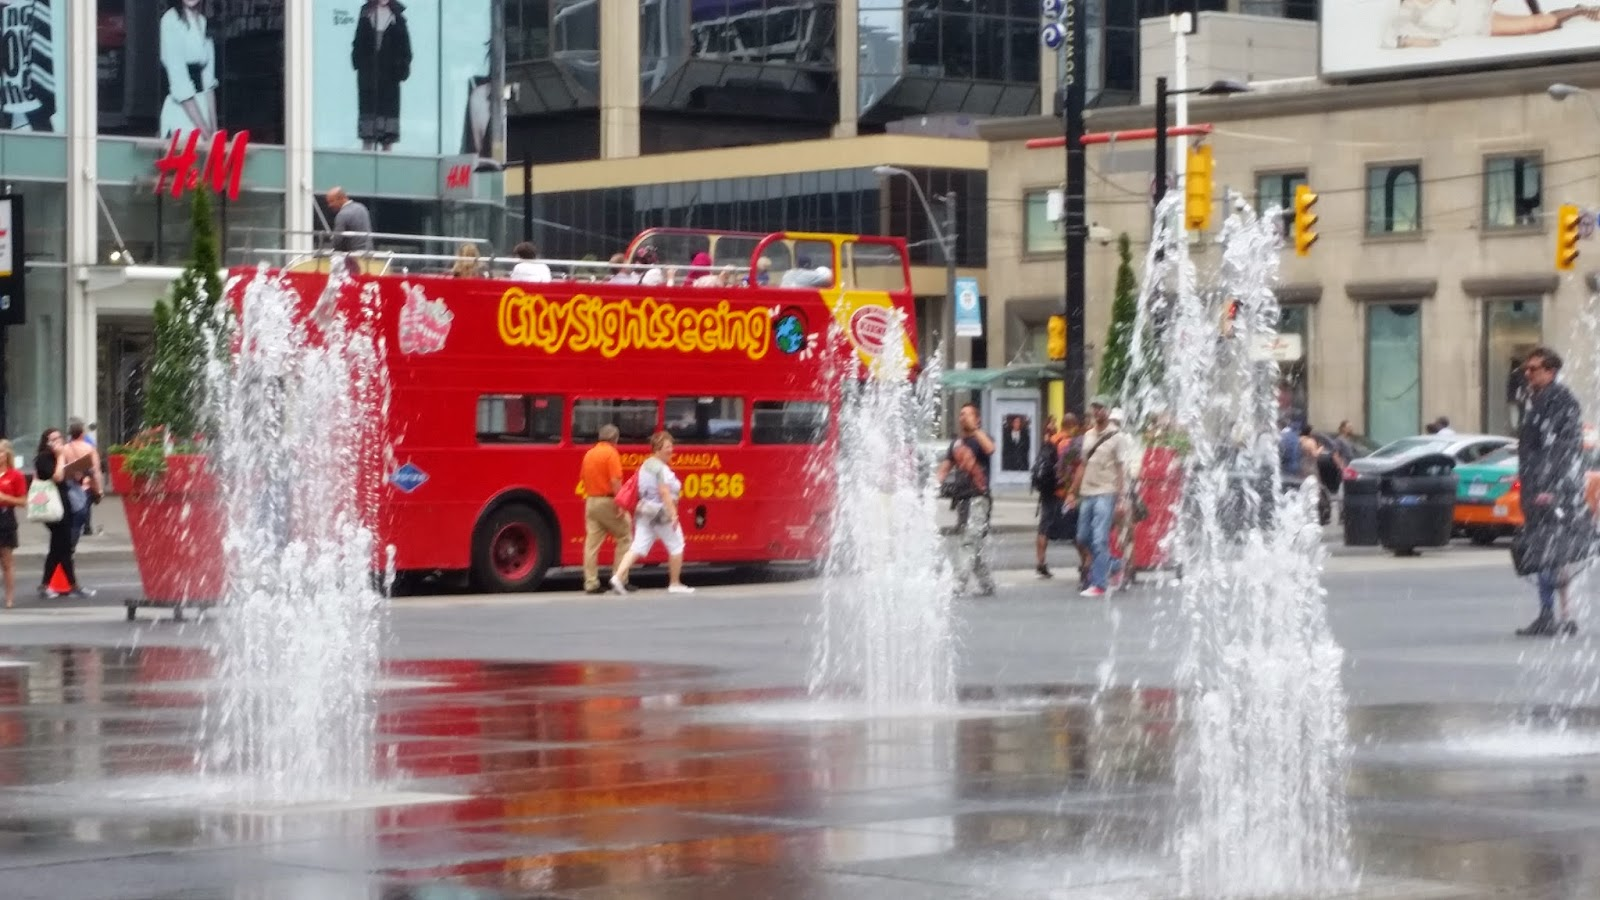 Toronto bus tours bring our history to life